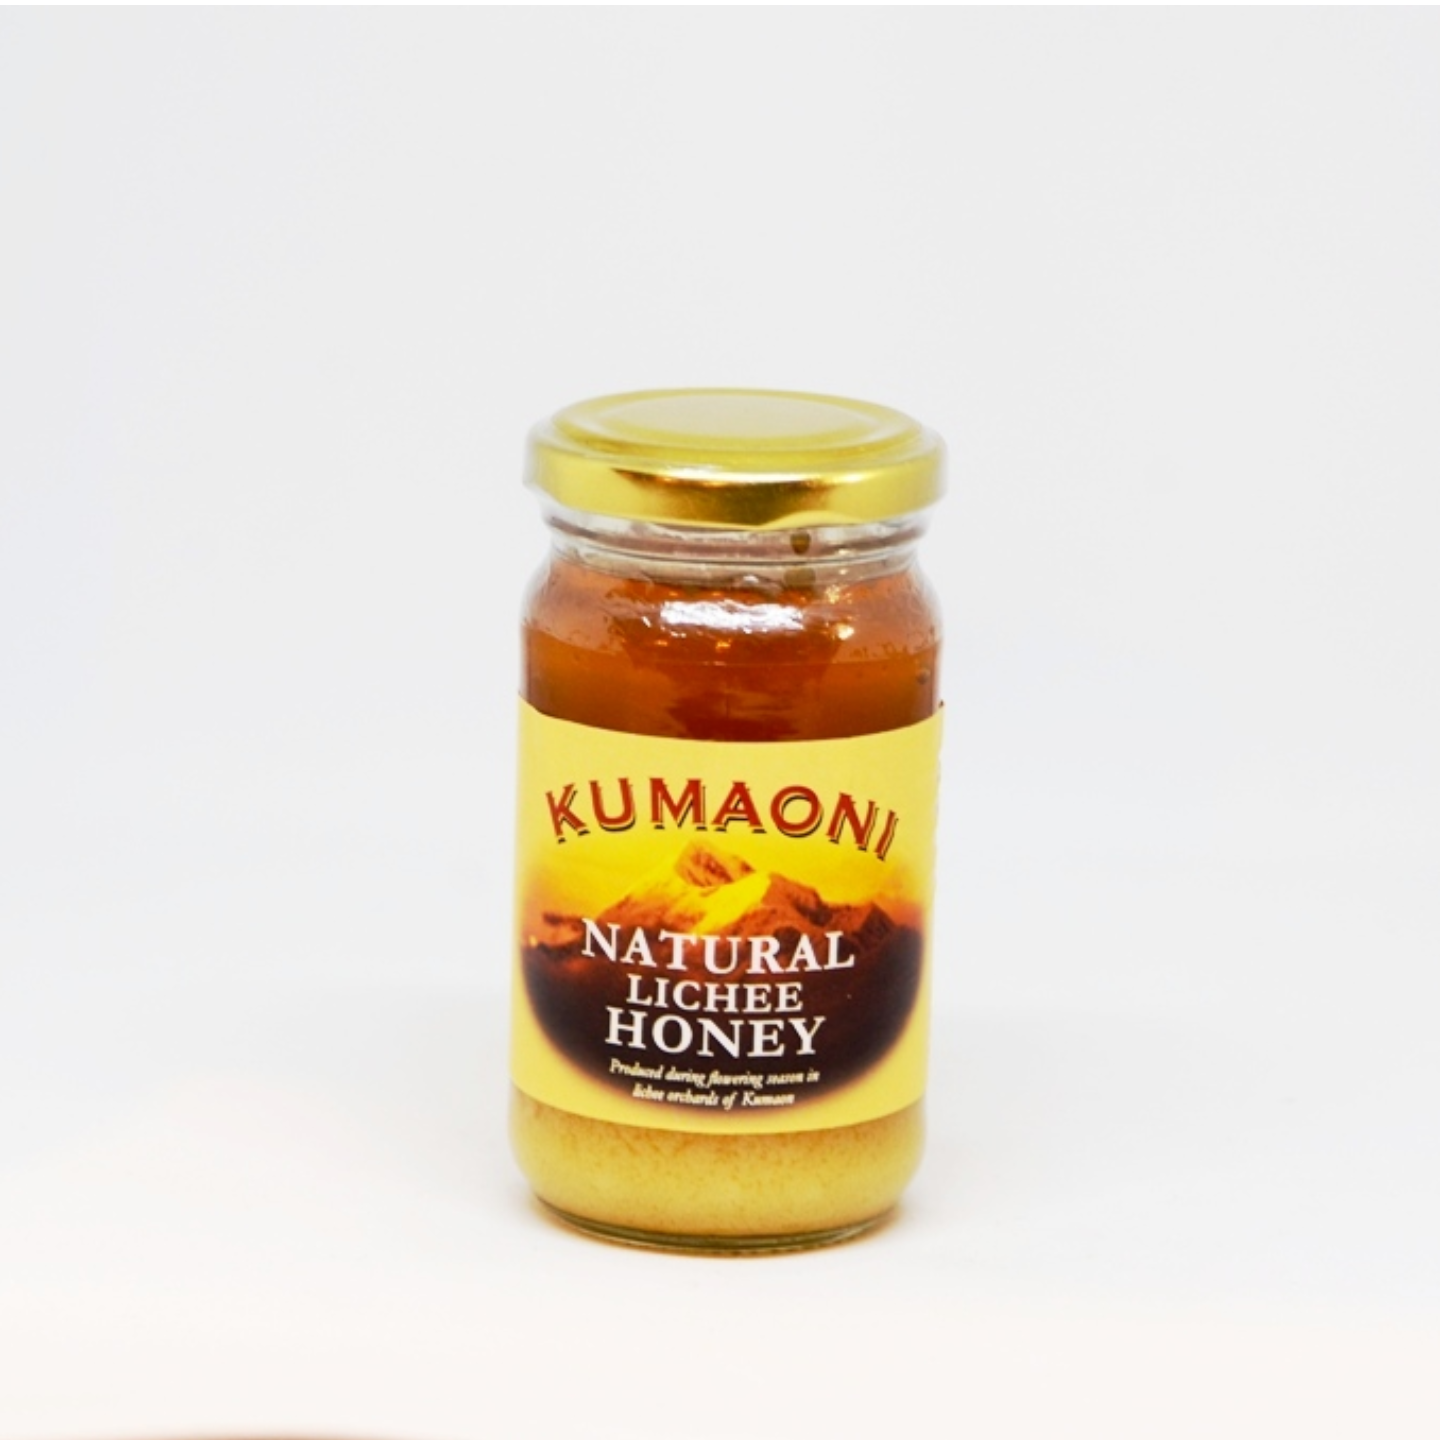 Kumaoni Natural Lichee Honey 250 gm